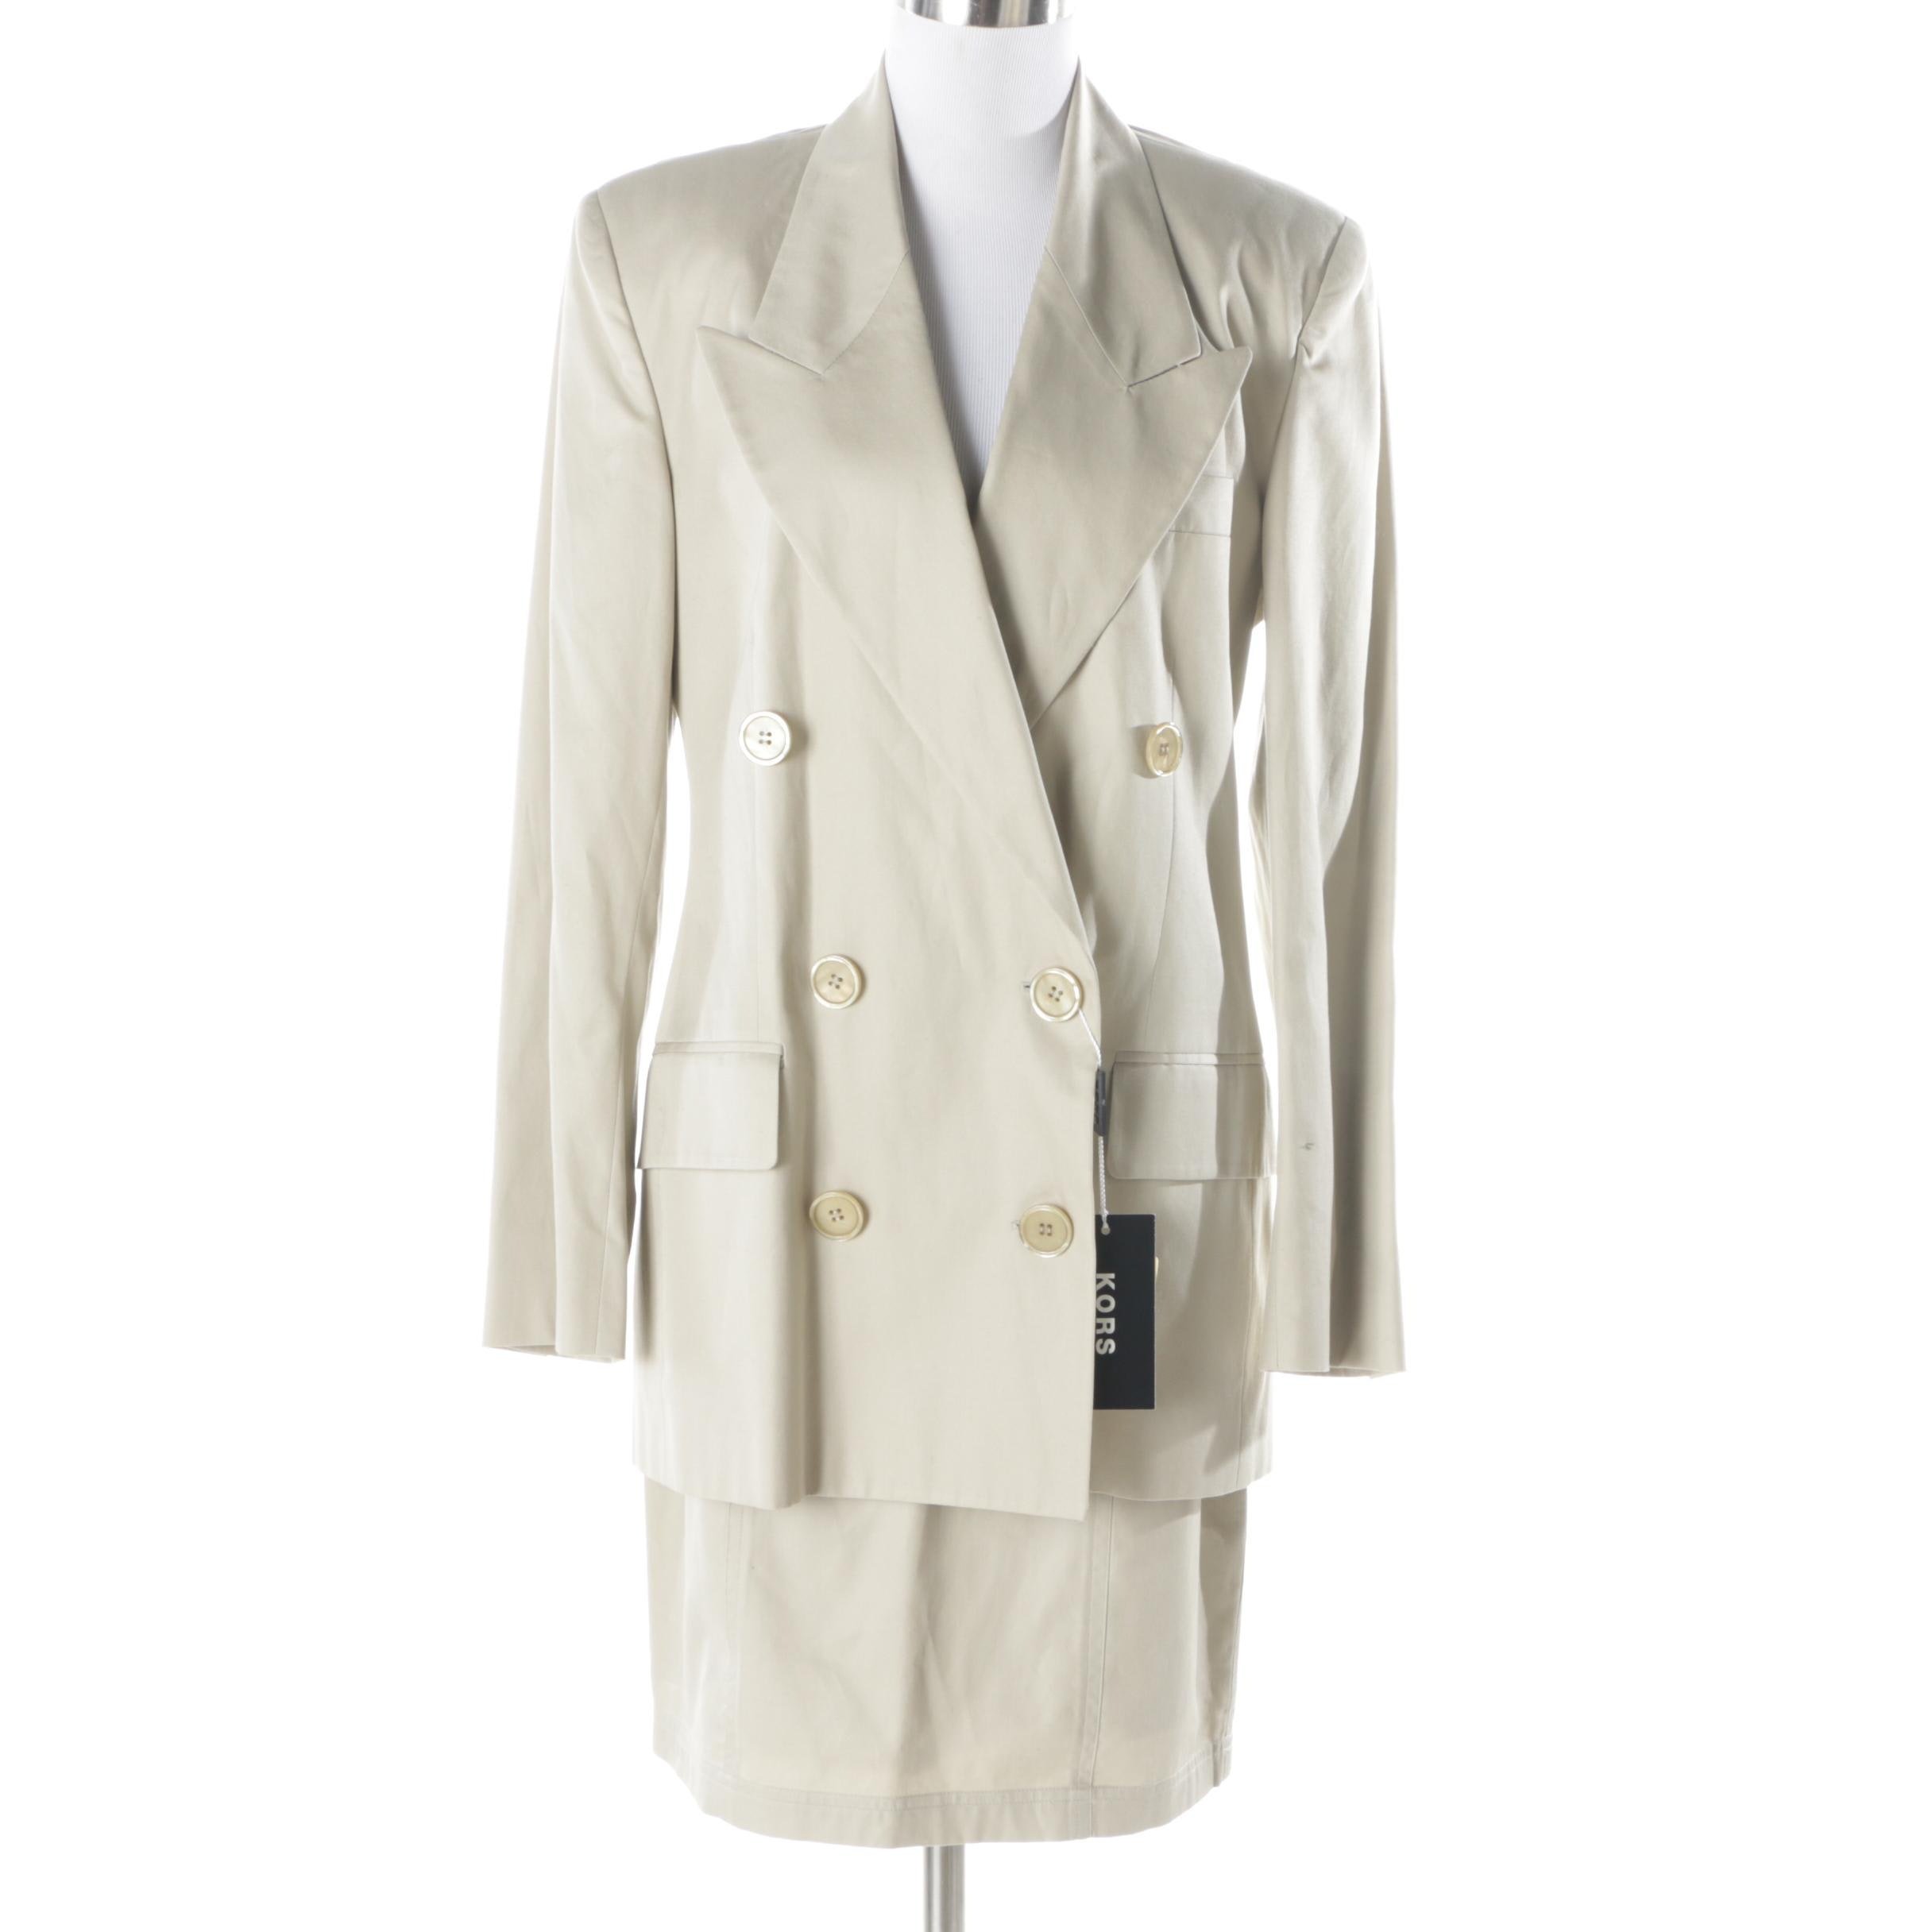 Women's Kors by Michael Kors Skirt Suit